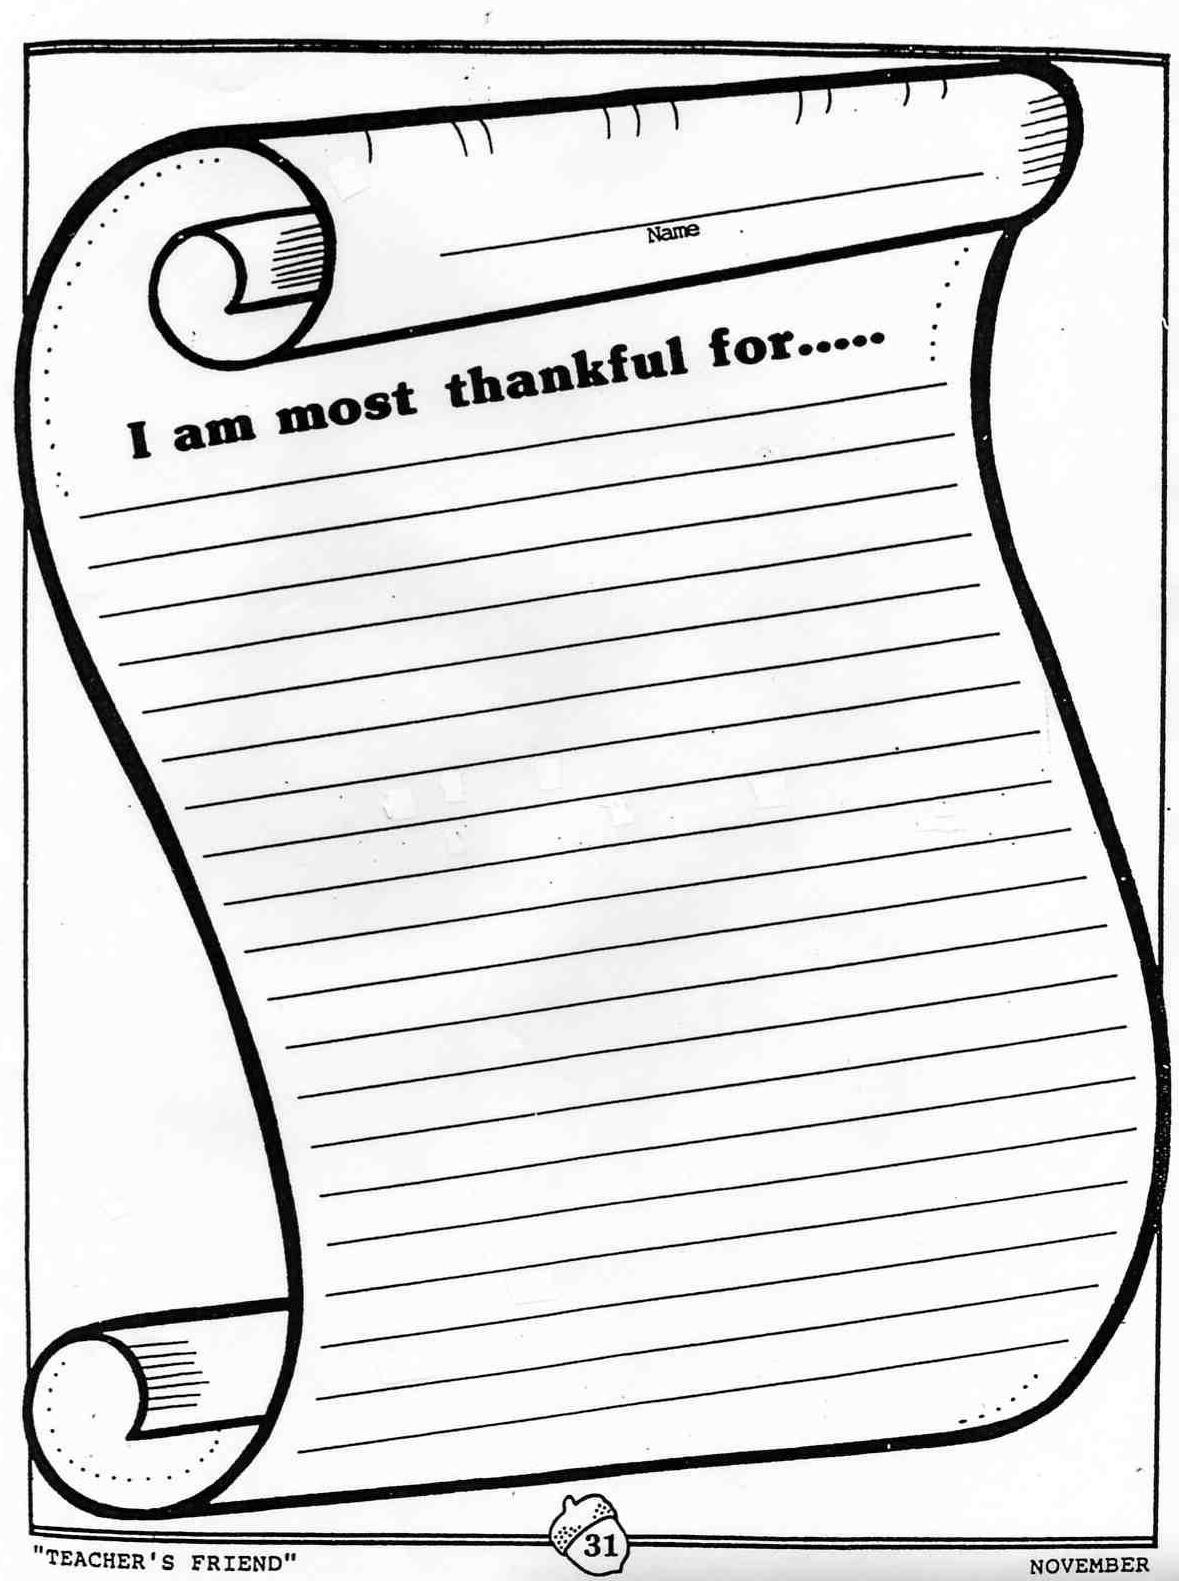 Elementary School Enrichment Activities We Are Thankful